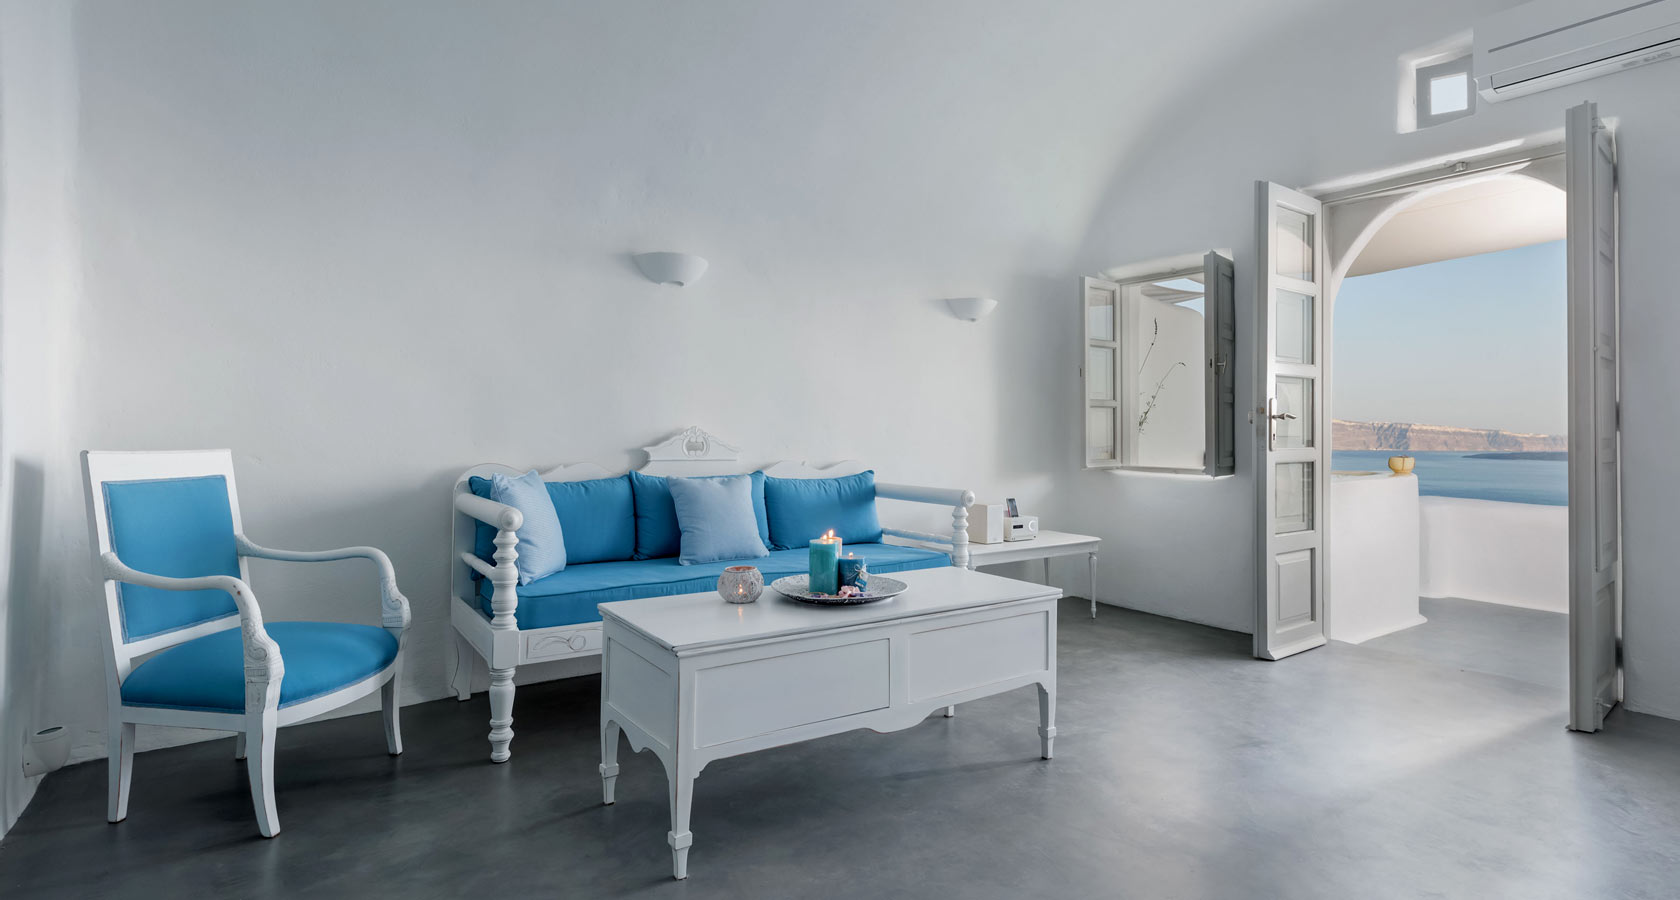 Thirea Luxury Suites Hotel in Oia Santorini